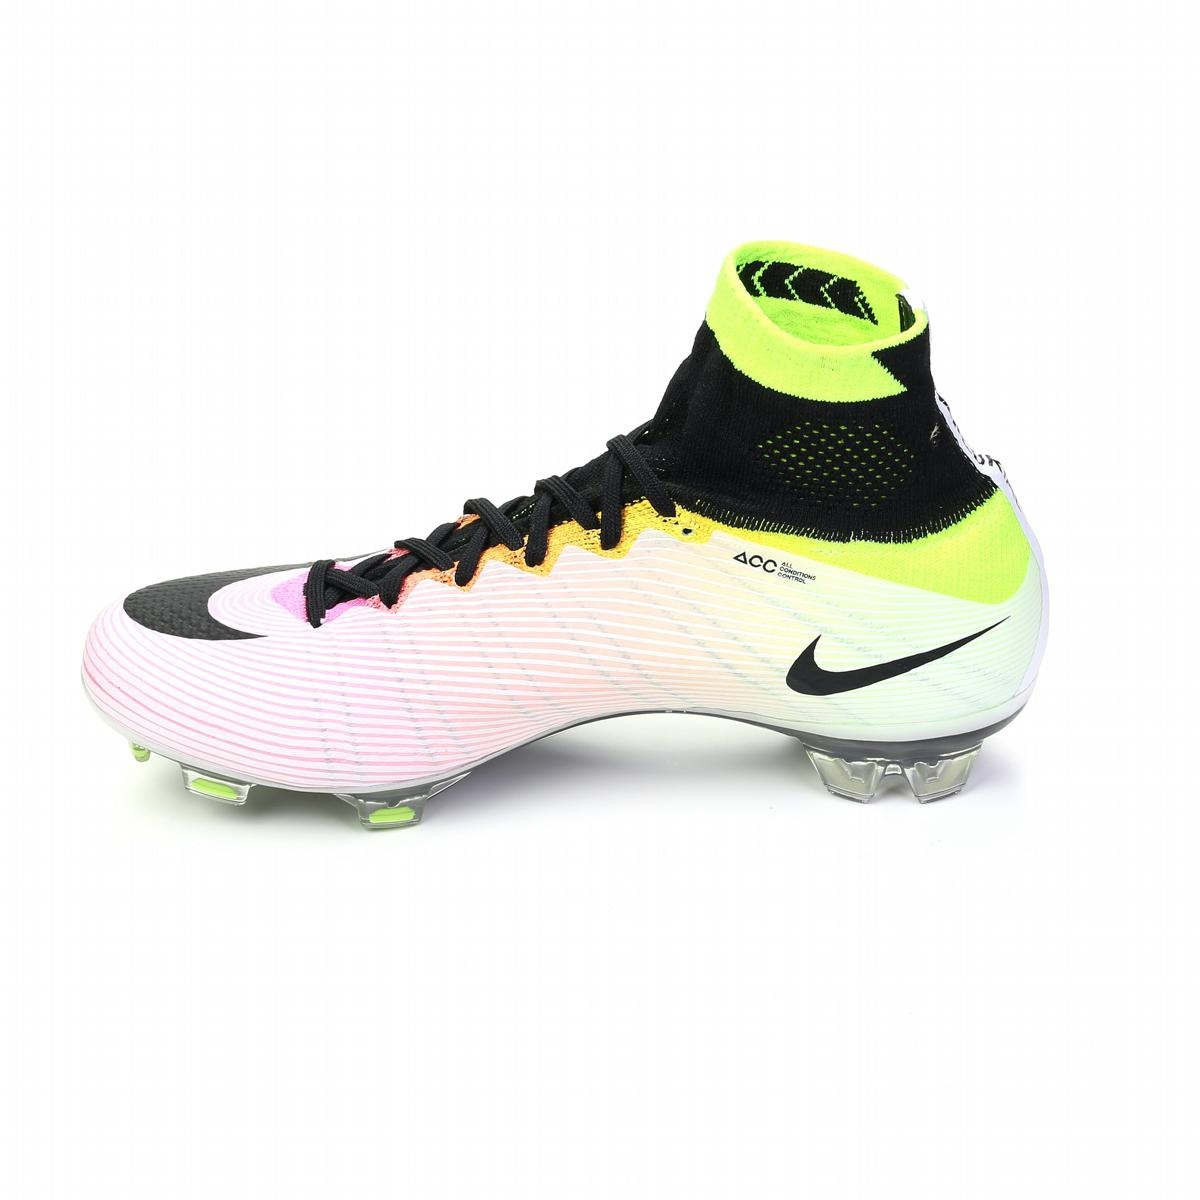 bd10f7485647 Mercurial SuperFly IV FG Soccer Cleats (White Volt Total Orange ...